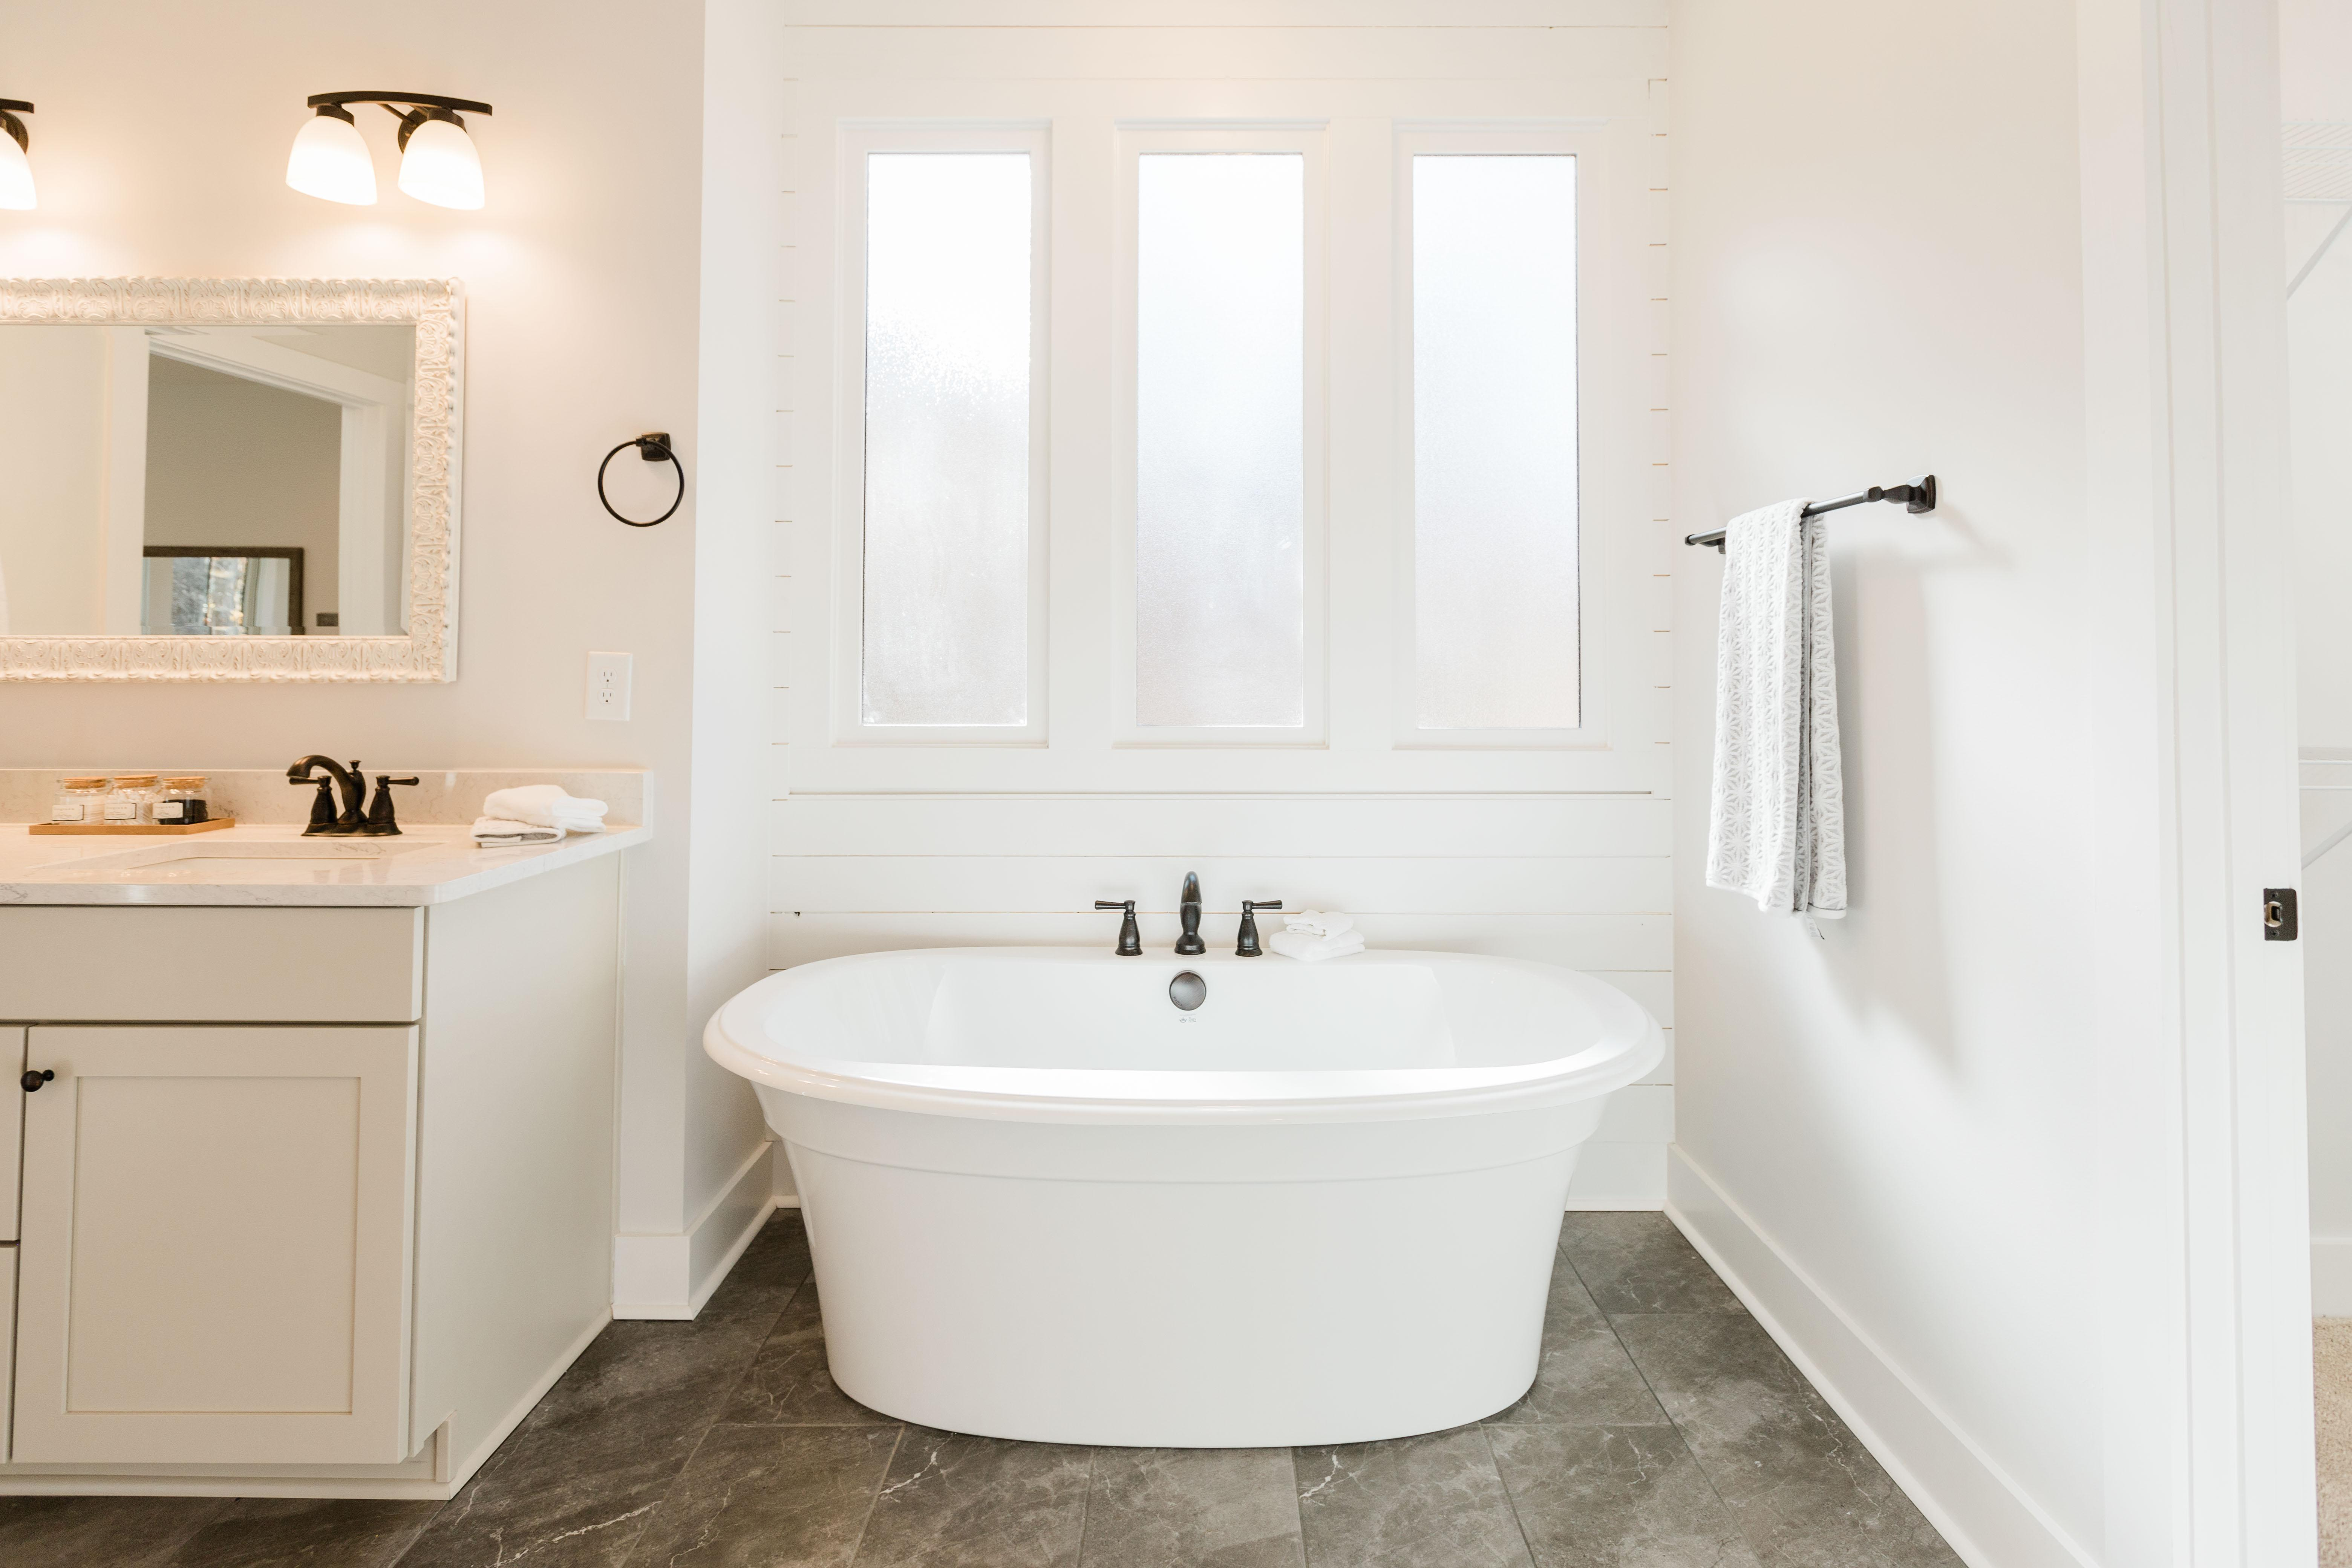 Bathroom featured in The Farmville Cottage By Holland Homes in Birmingham, AL